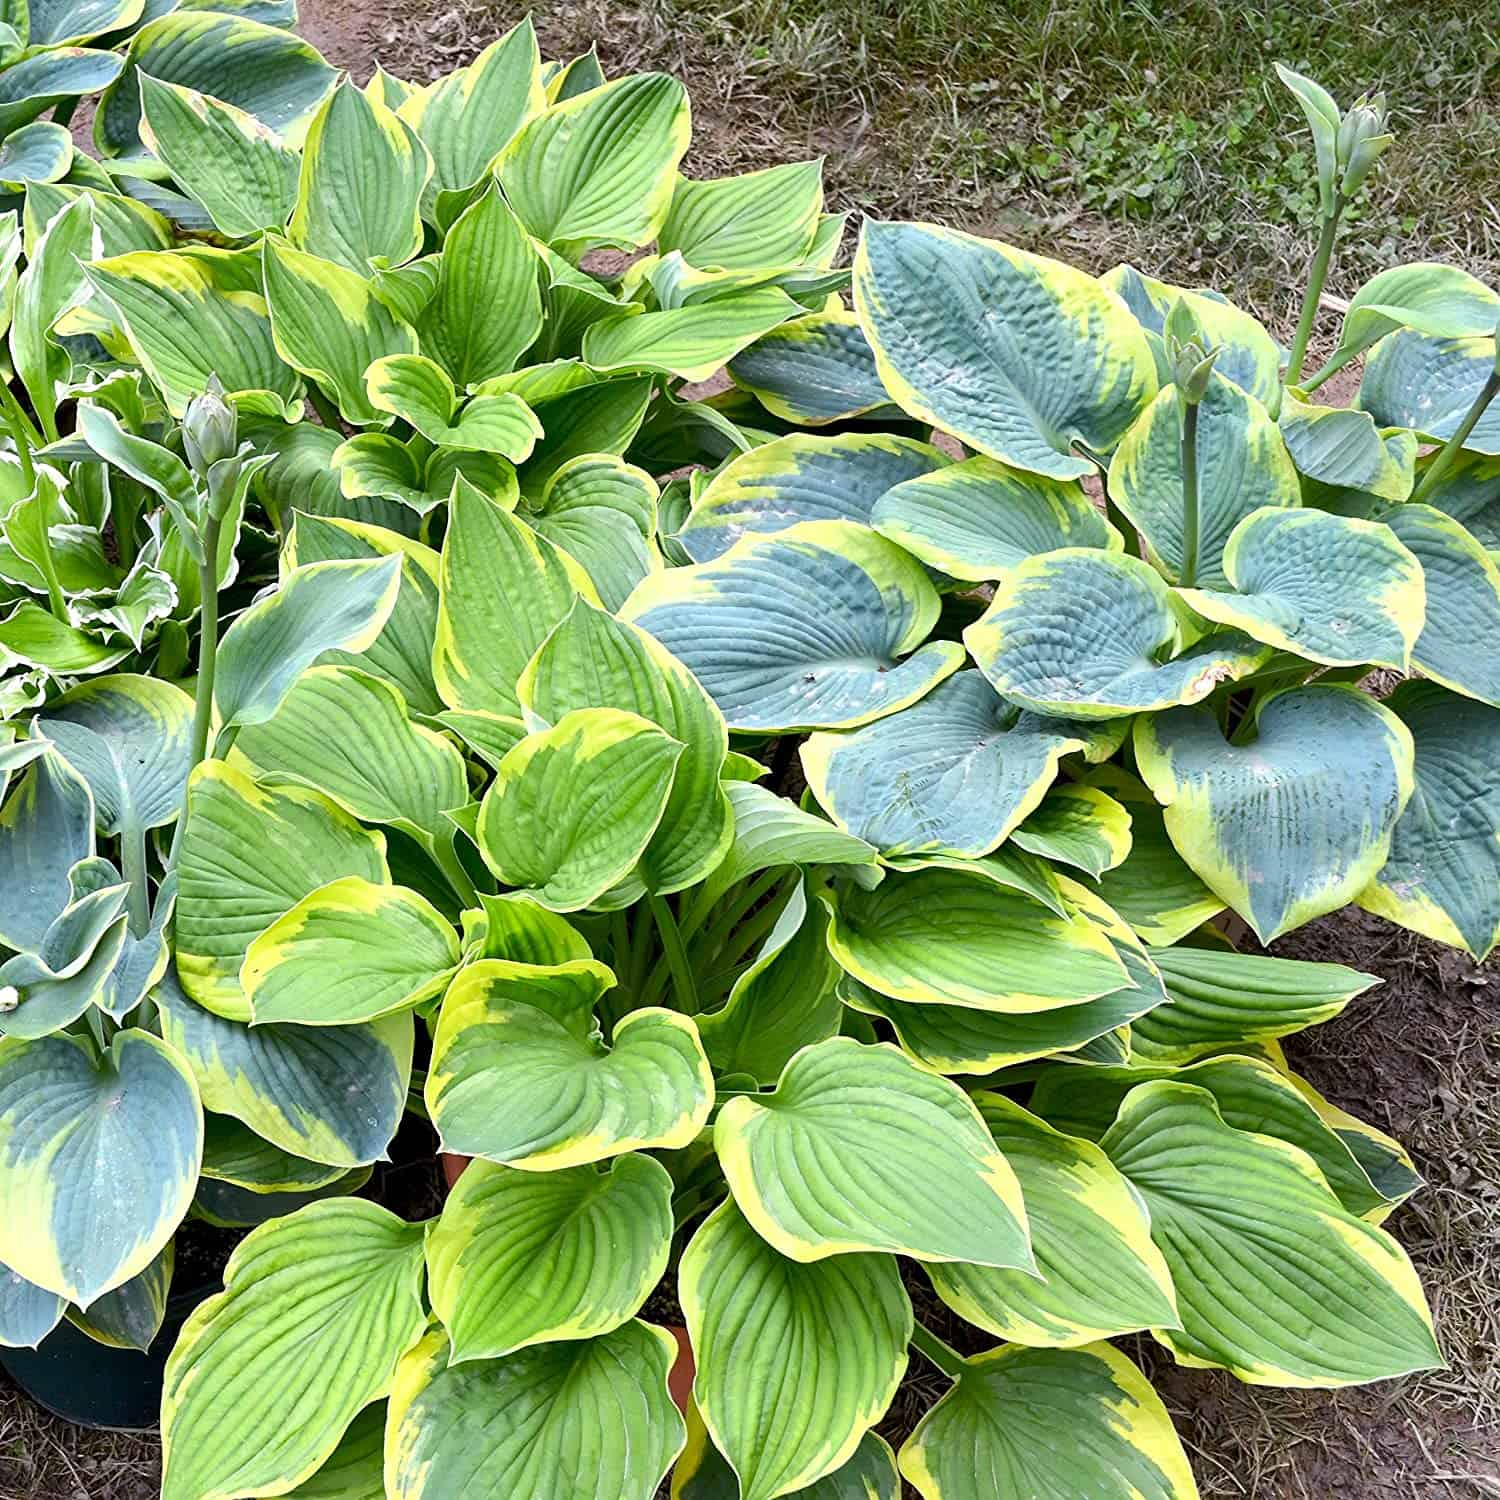 10 Bare Root Hostas - Fabulous Color for Shady Gardens